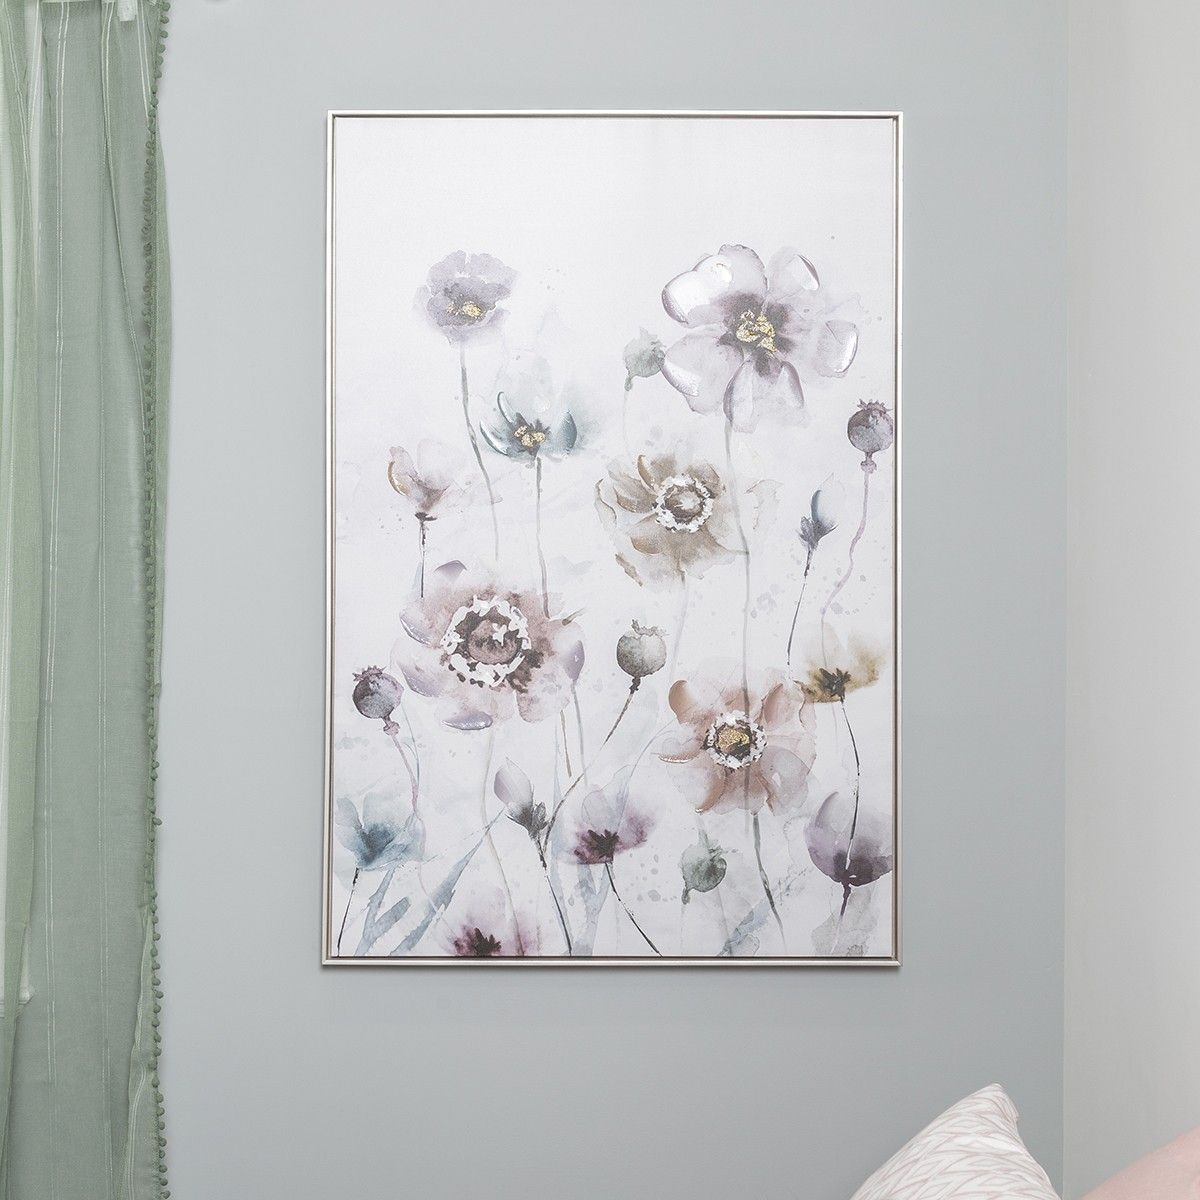 FRAME ART (Ink Painting Flower) (With Images)